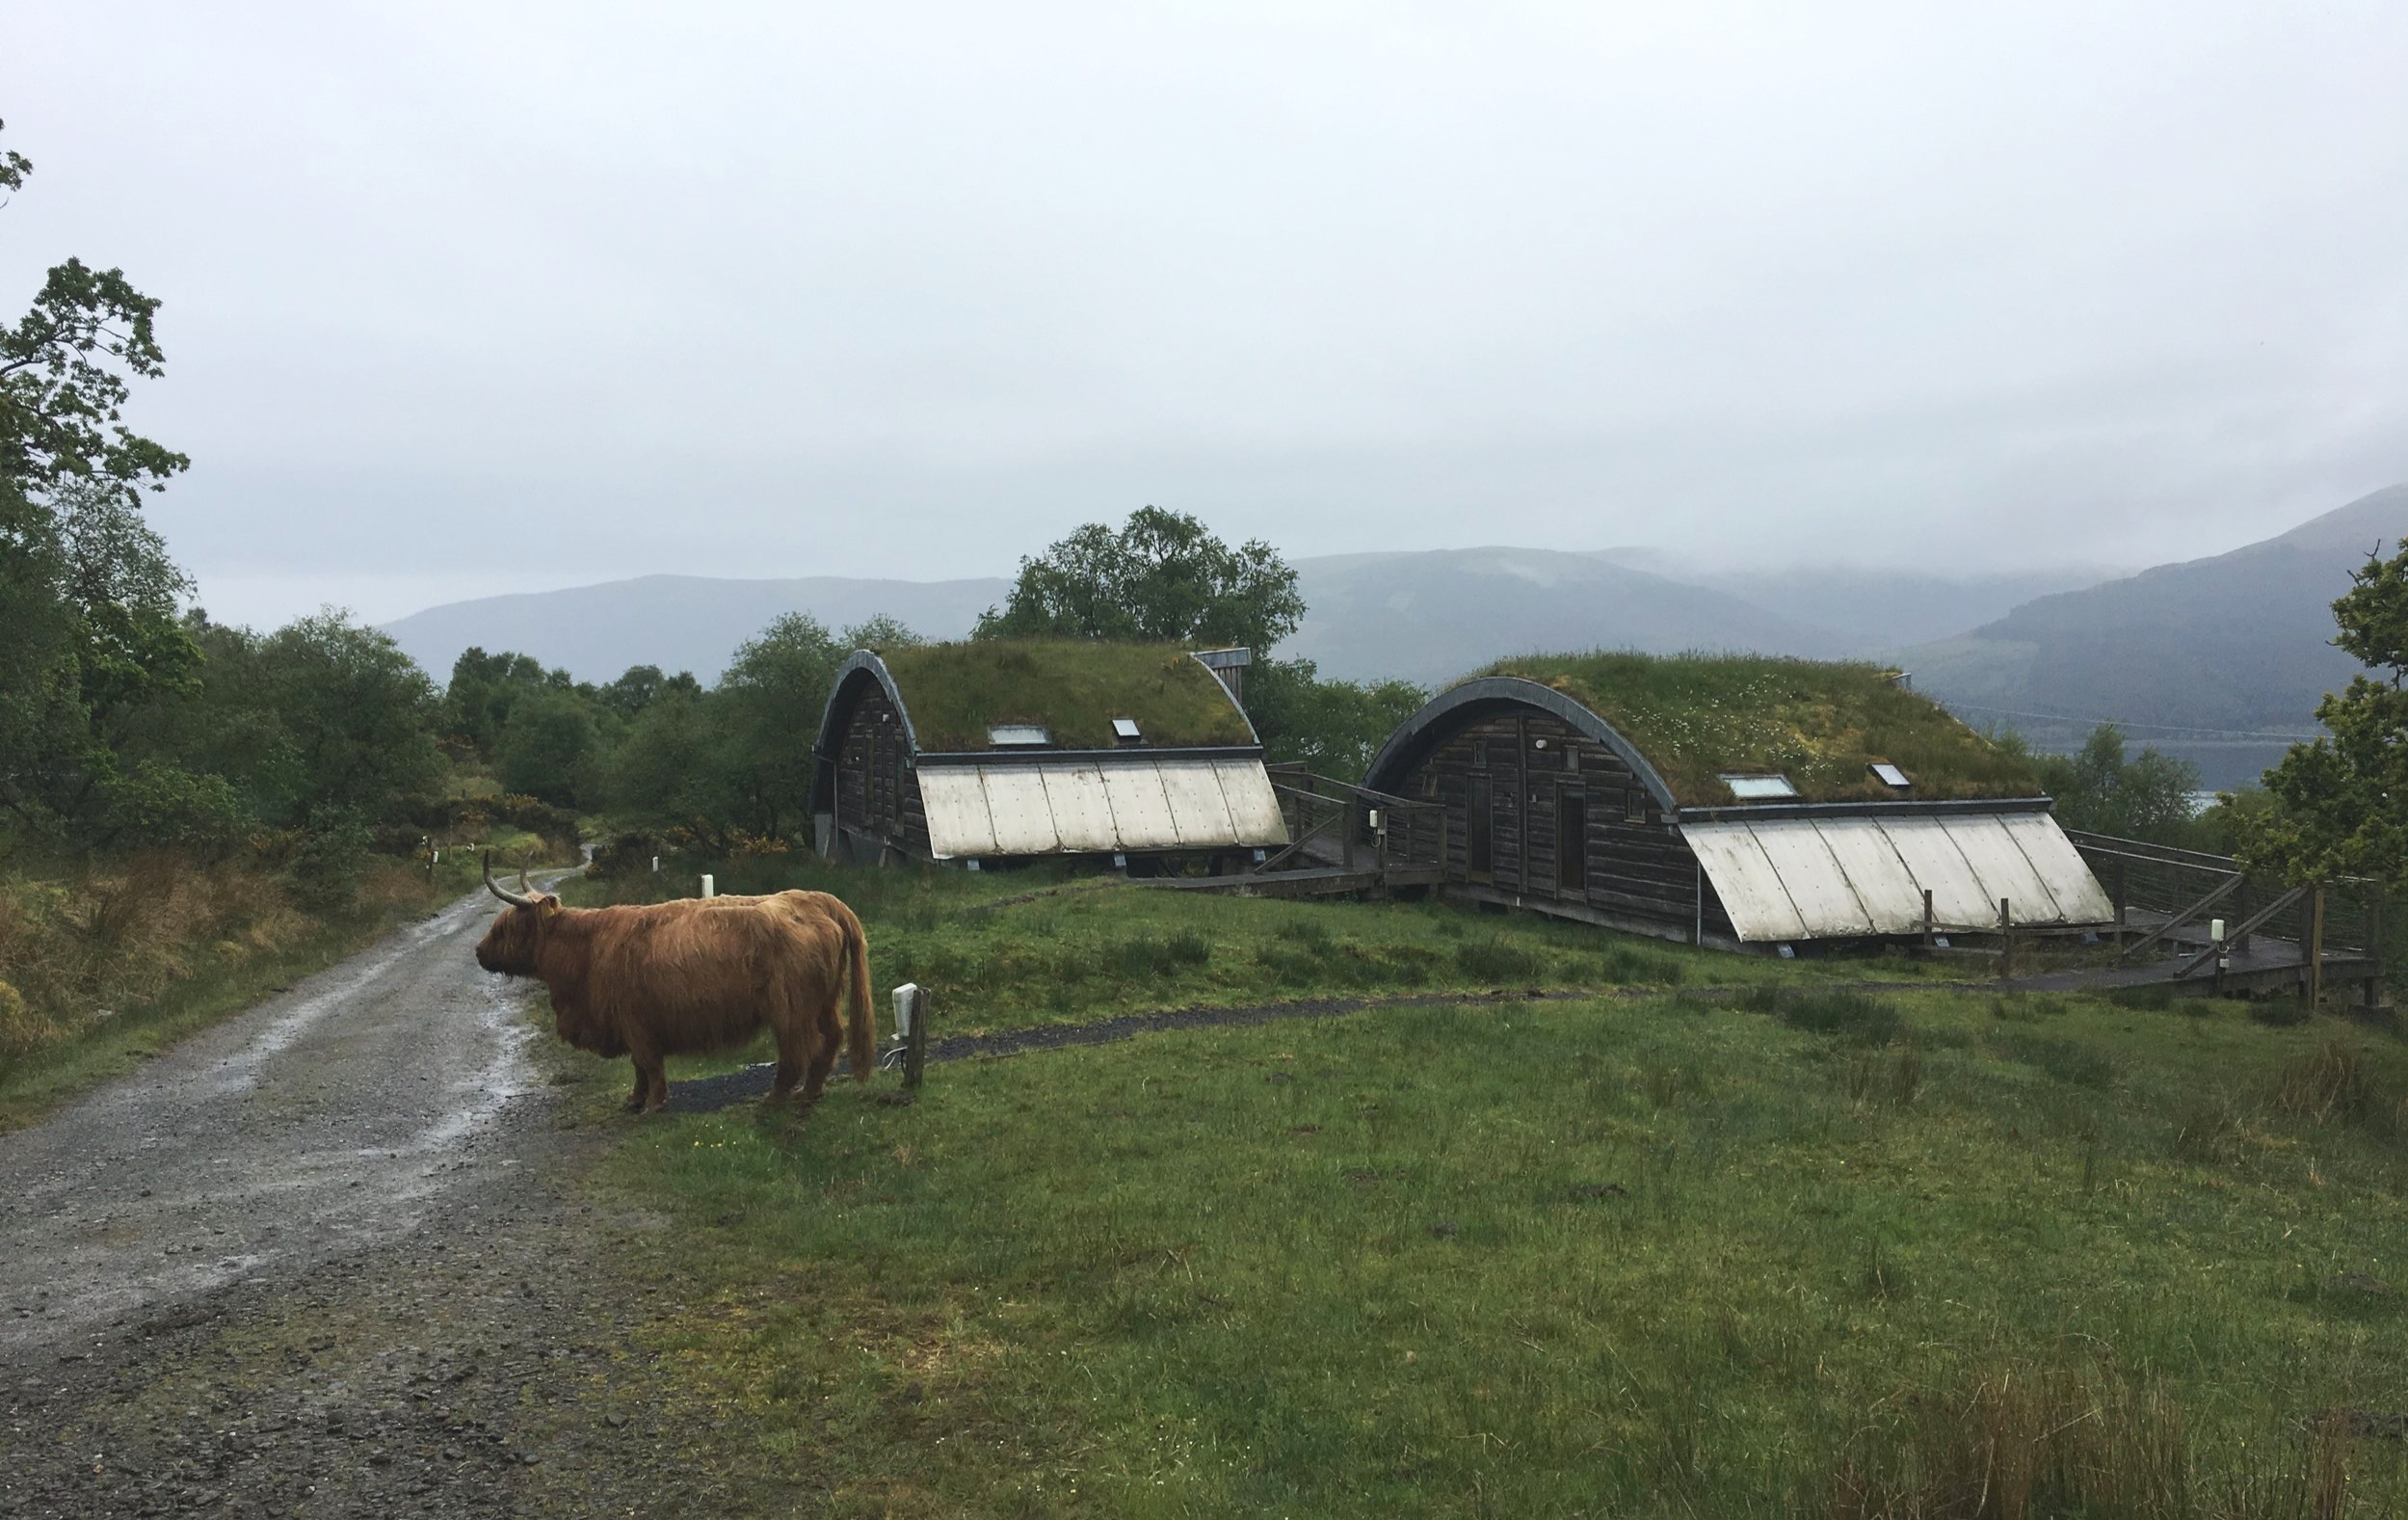 The sod-roofed Pods with shaggy Highland Cow.